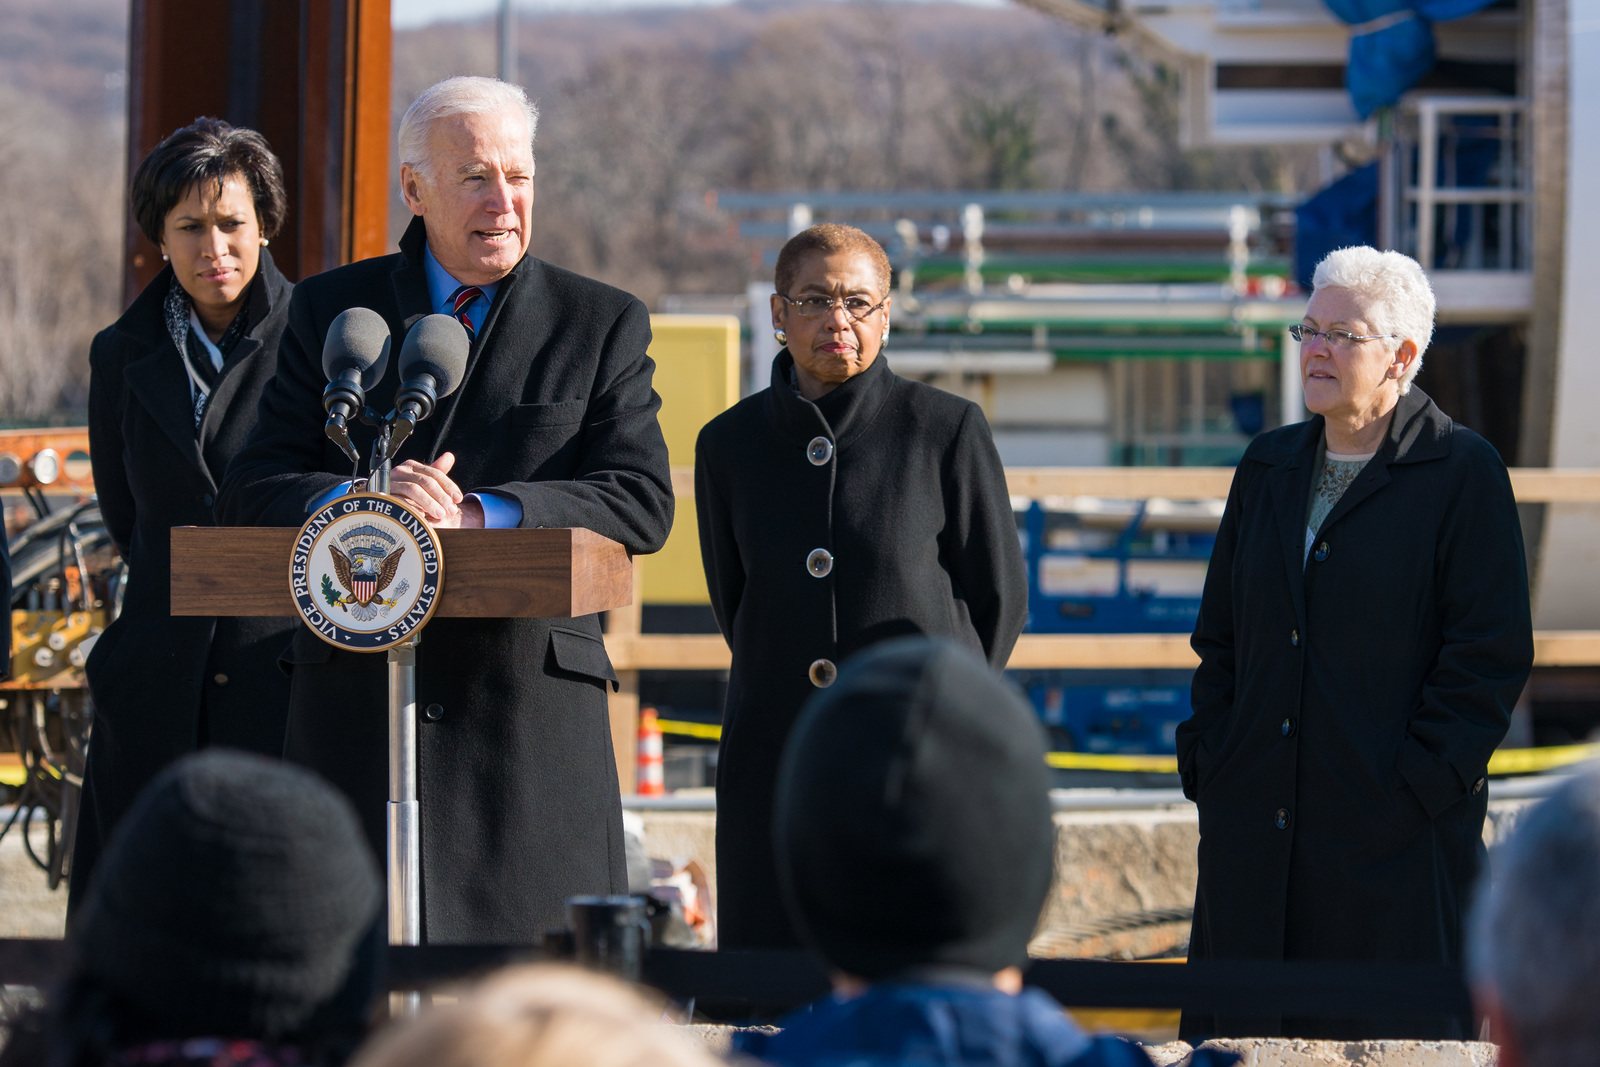 Office of the Administrator - Build America - Administrator Gina McCarthy, Vice President Joe Biden, and D.C. Mayor Muriel Bowser visiting a DC Clean Rivers Project, and DC Congresswoman Eleanor Holmes Norton [412-APD-1276-2015-01-16_BuildAmerica_021.jpg]